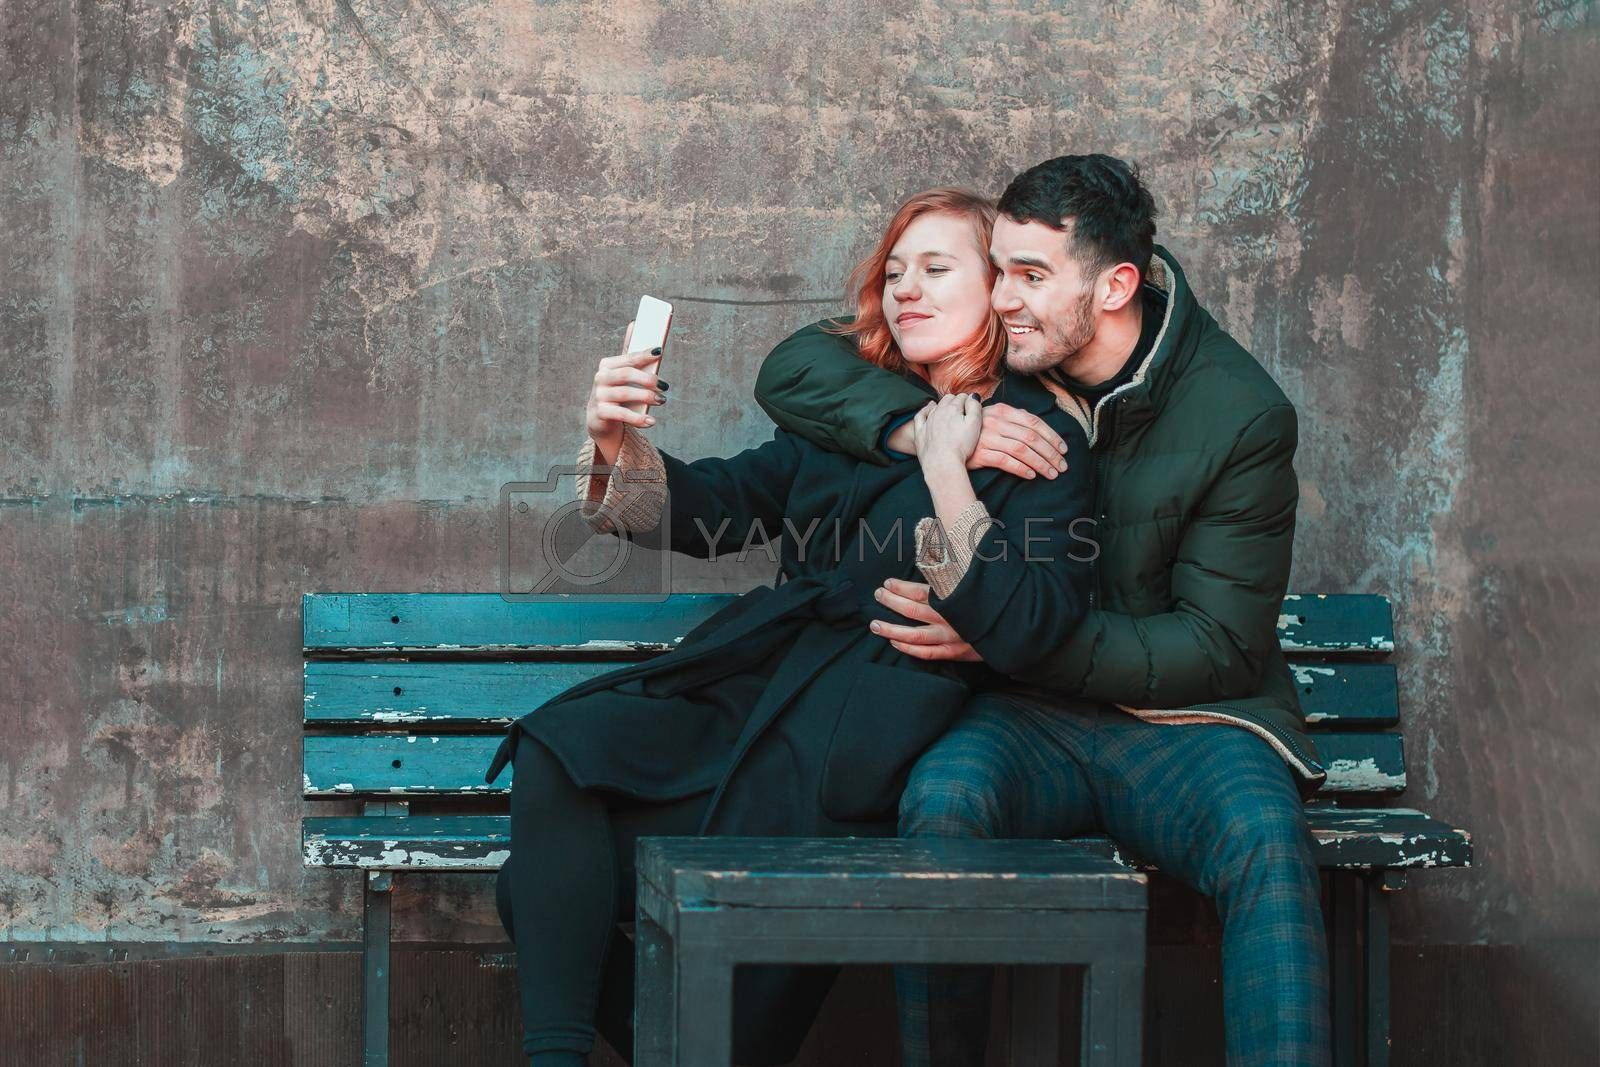 Cheerful Emotional Young Couple Sitting on the Bench and Making Selfie. Two Happy People Love Story on the Street